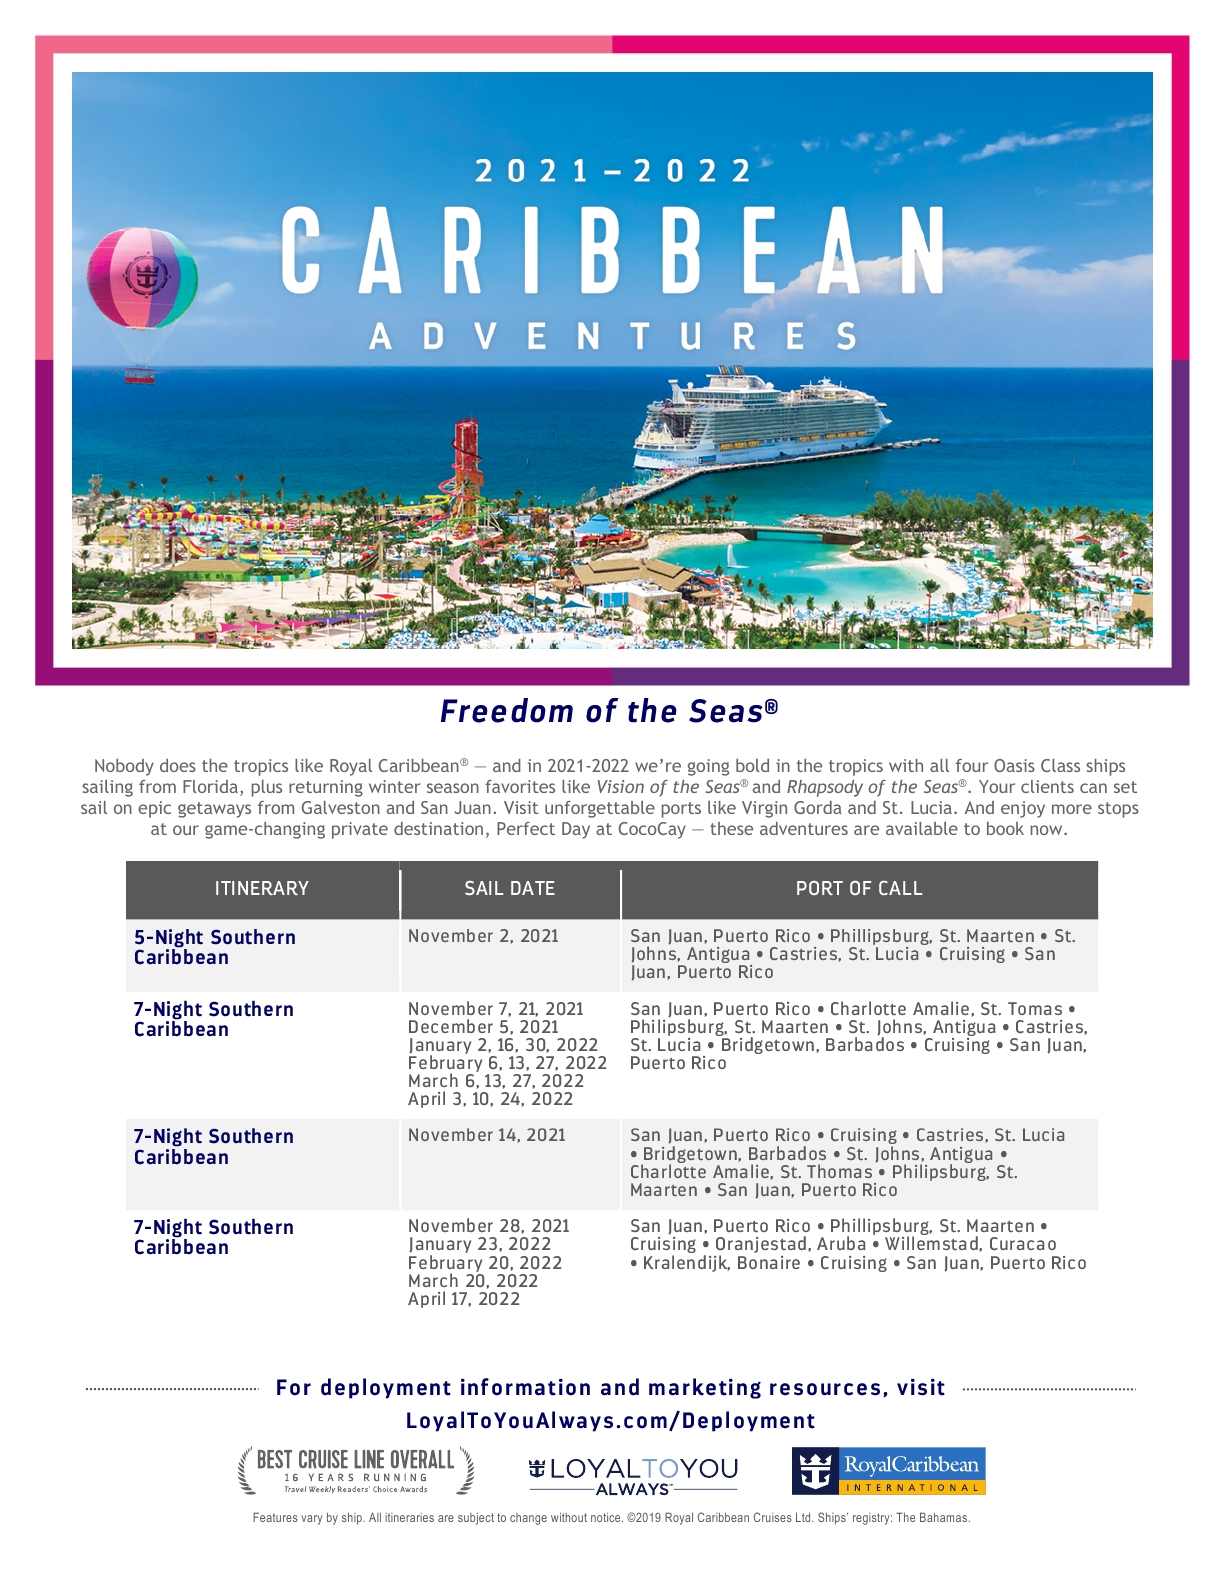 ROYAL CARIBBEAN CARIBE 2021-2022